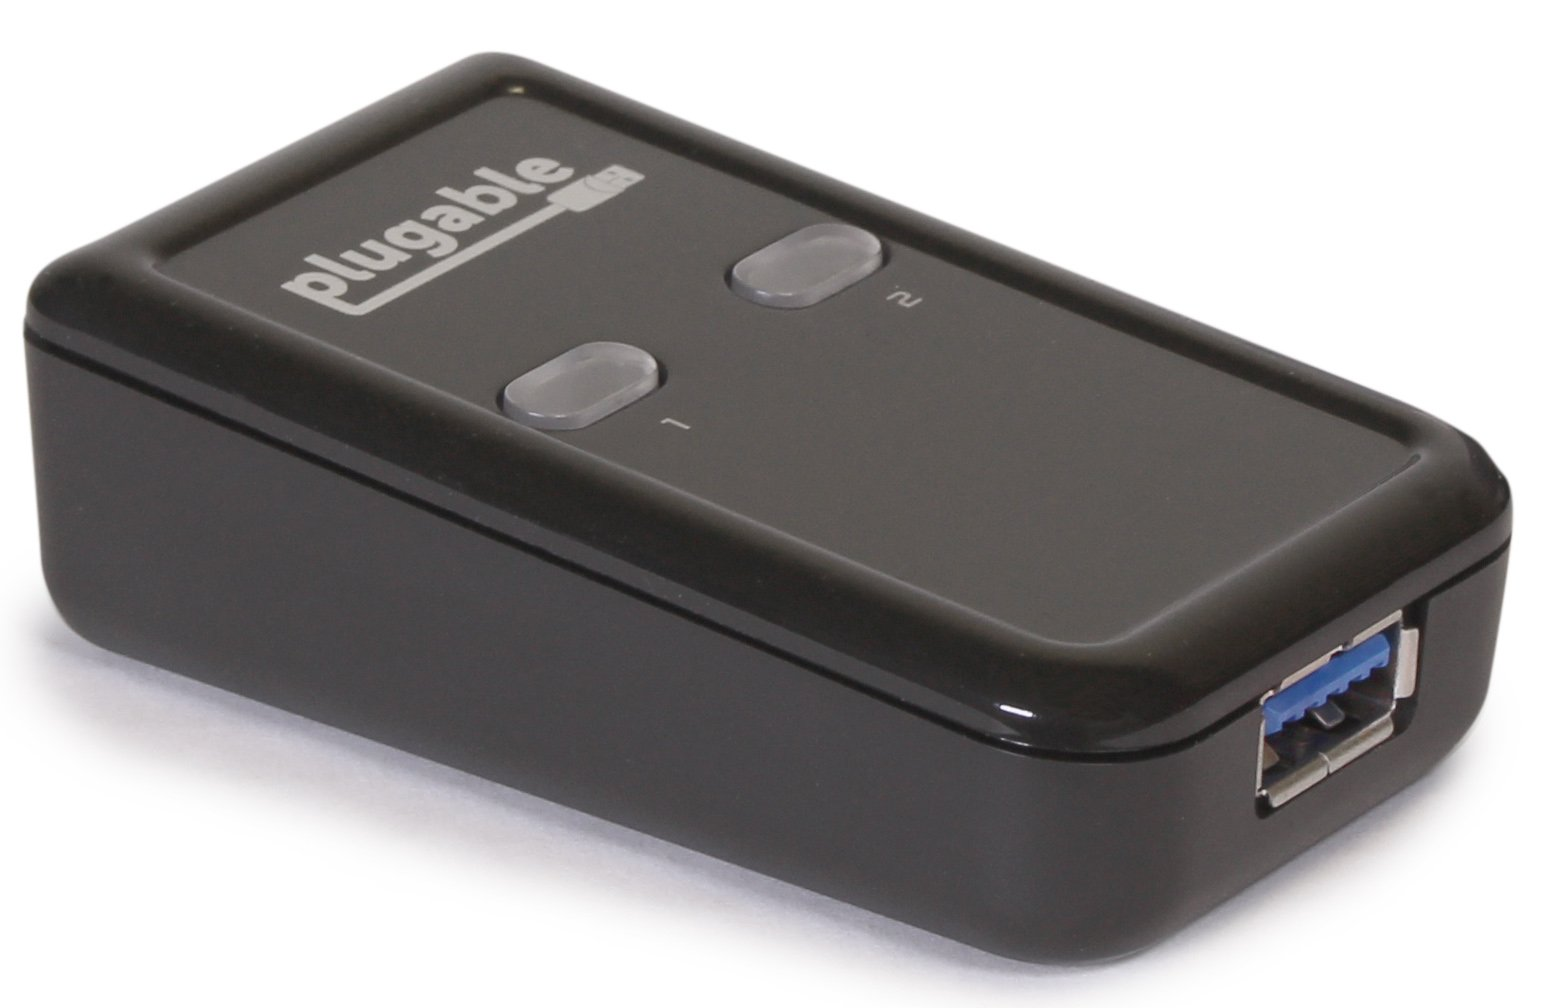 Plugable USB 3.0 Sharing Switch for One-Button Swapping of USB Device or Hub Between Two Computers (AB Switch) by Plugable